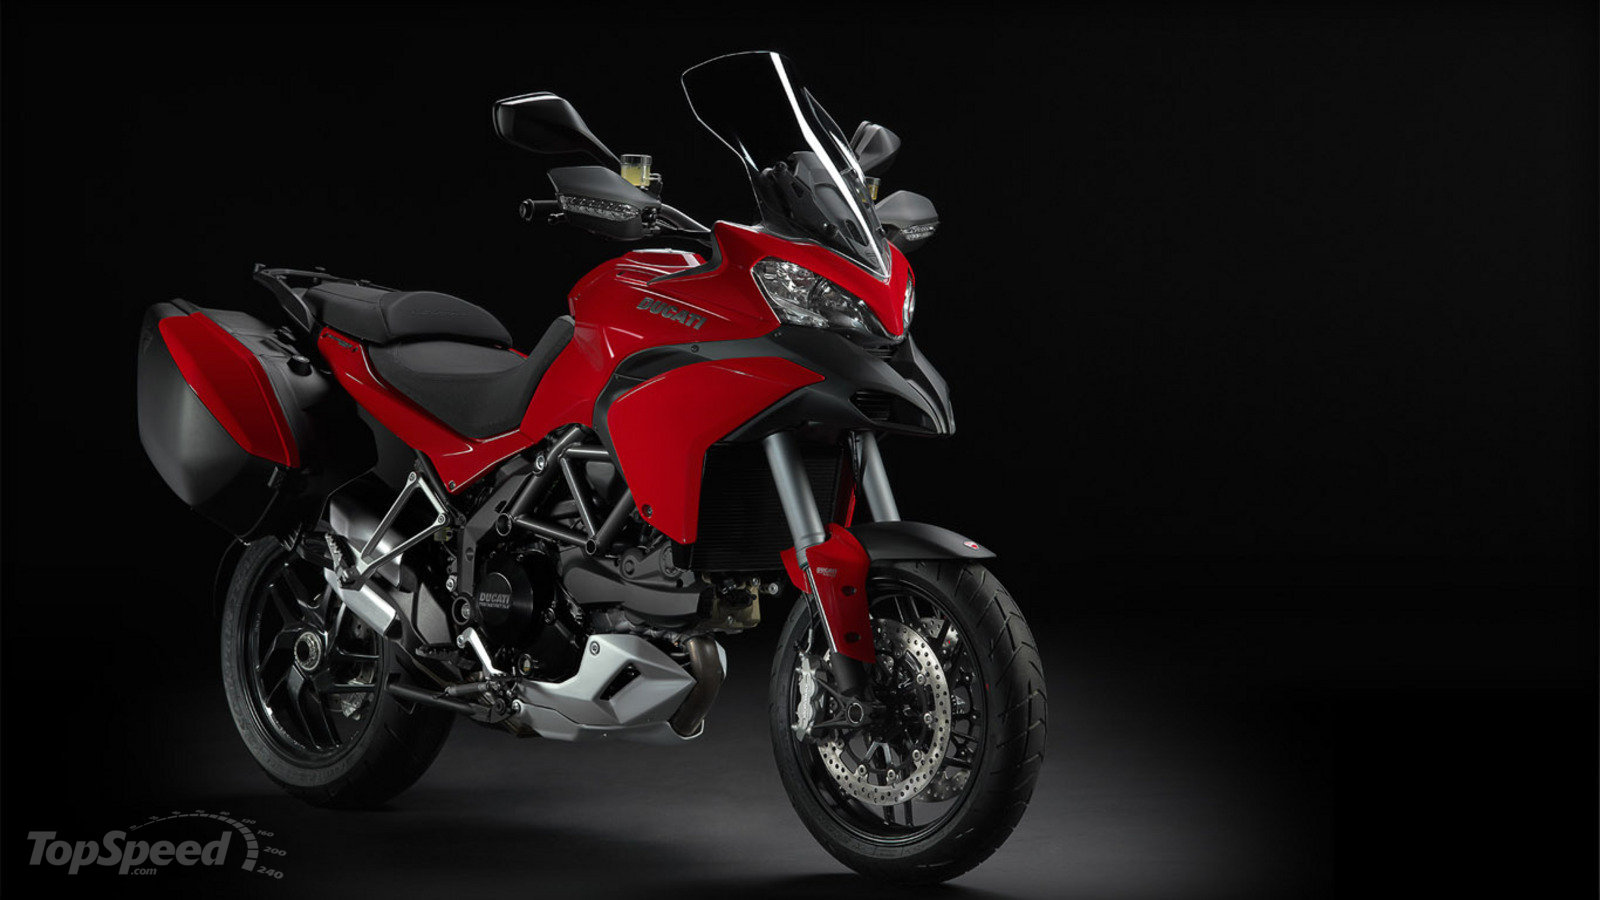 2014 ducati multistrada 1200 s touring review top speed. Black Bedroom Furniture Sets. Home Design Ideas